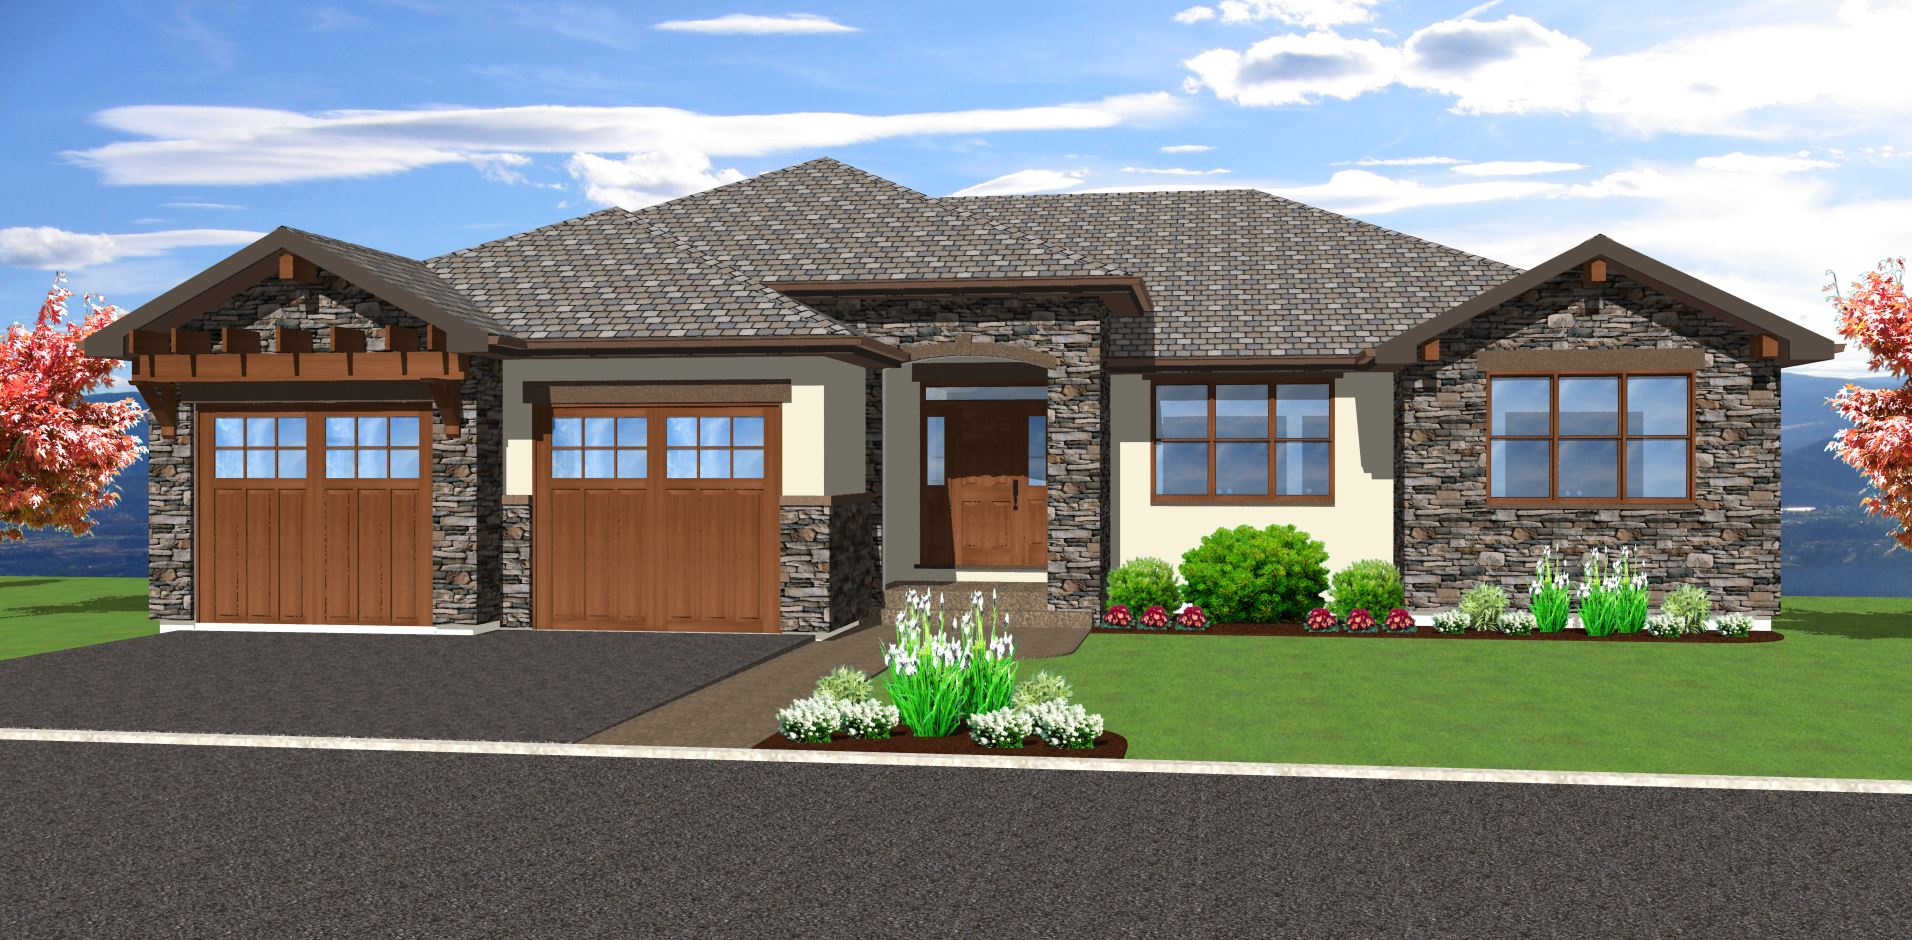 hillside house plans spacious hillside home with walkout basement 67702mg 1st floor master suite butler walk in 7800